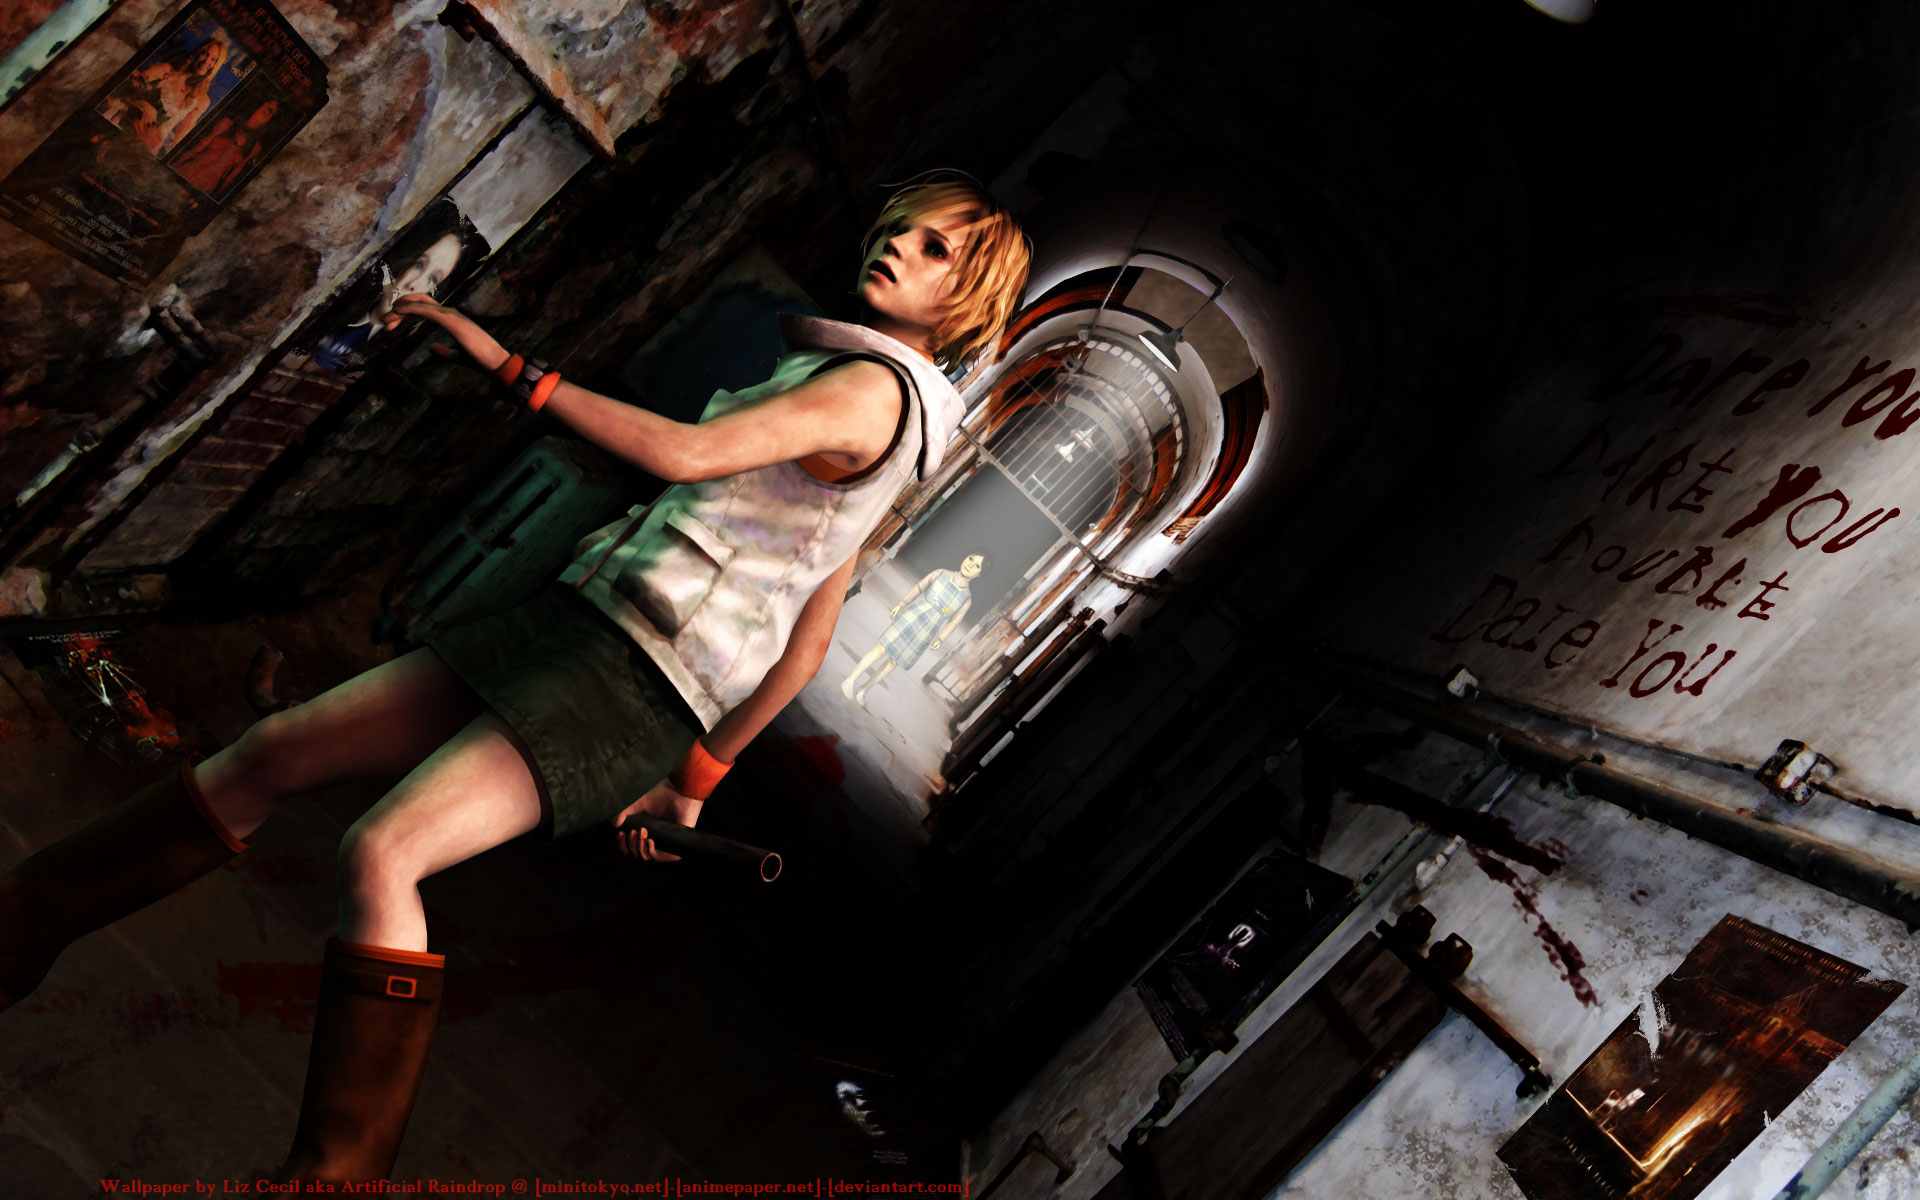 Silent Hill 3 Wallpaper: Heather's Nightmare Full HD Wallpaper And Background Image